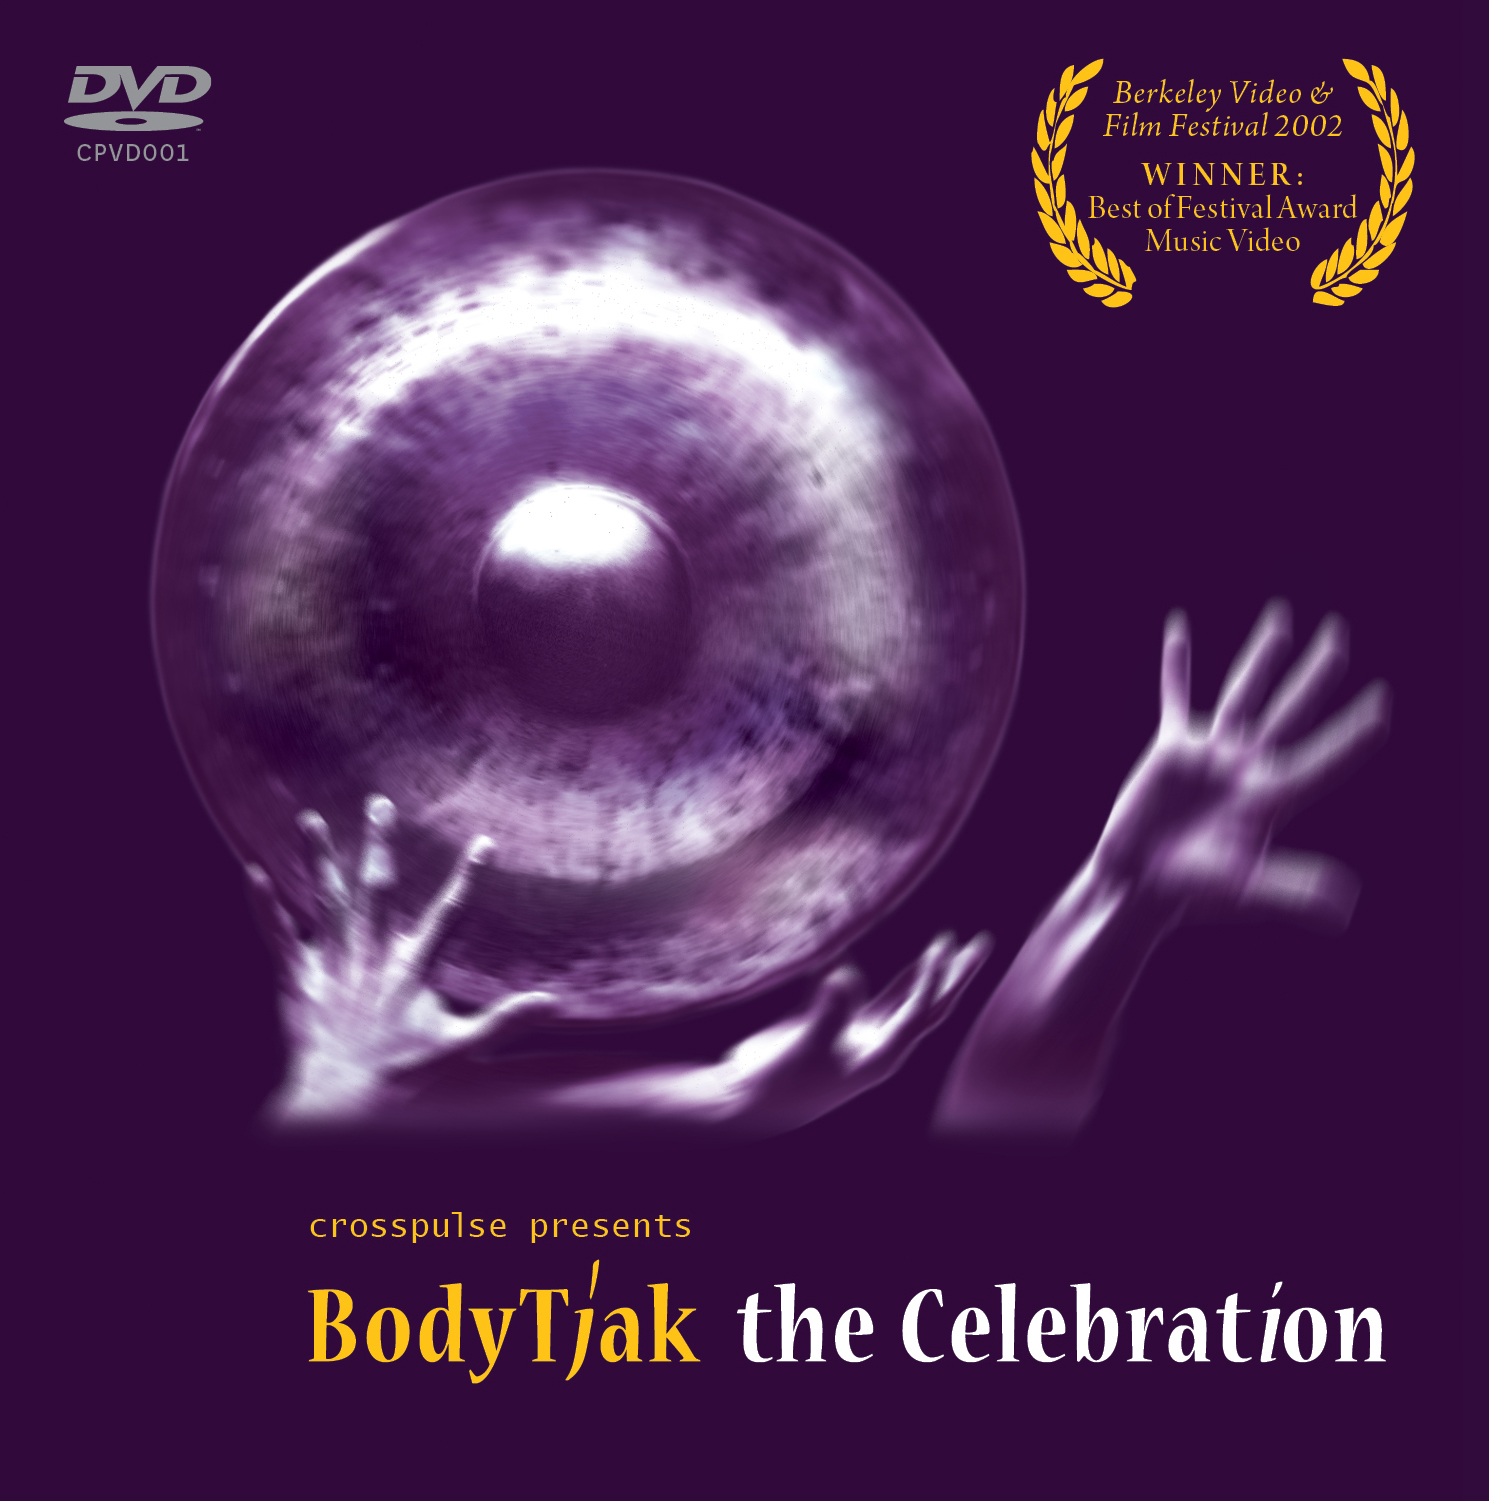 Body Tjak/The Celebration Performance Video DVD